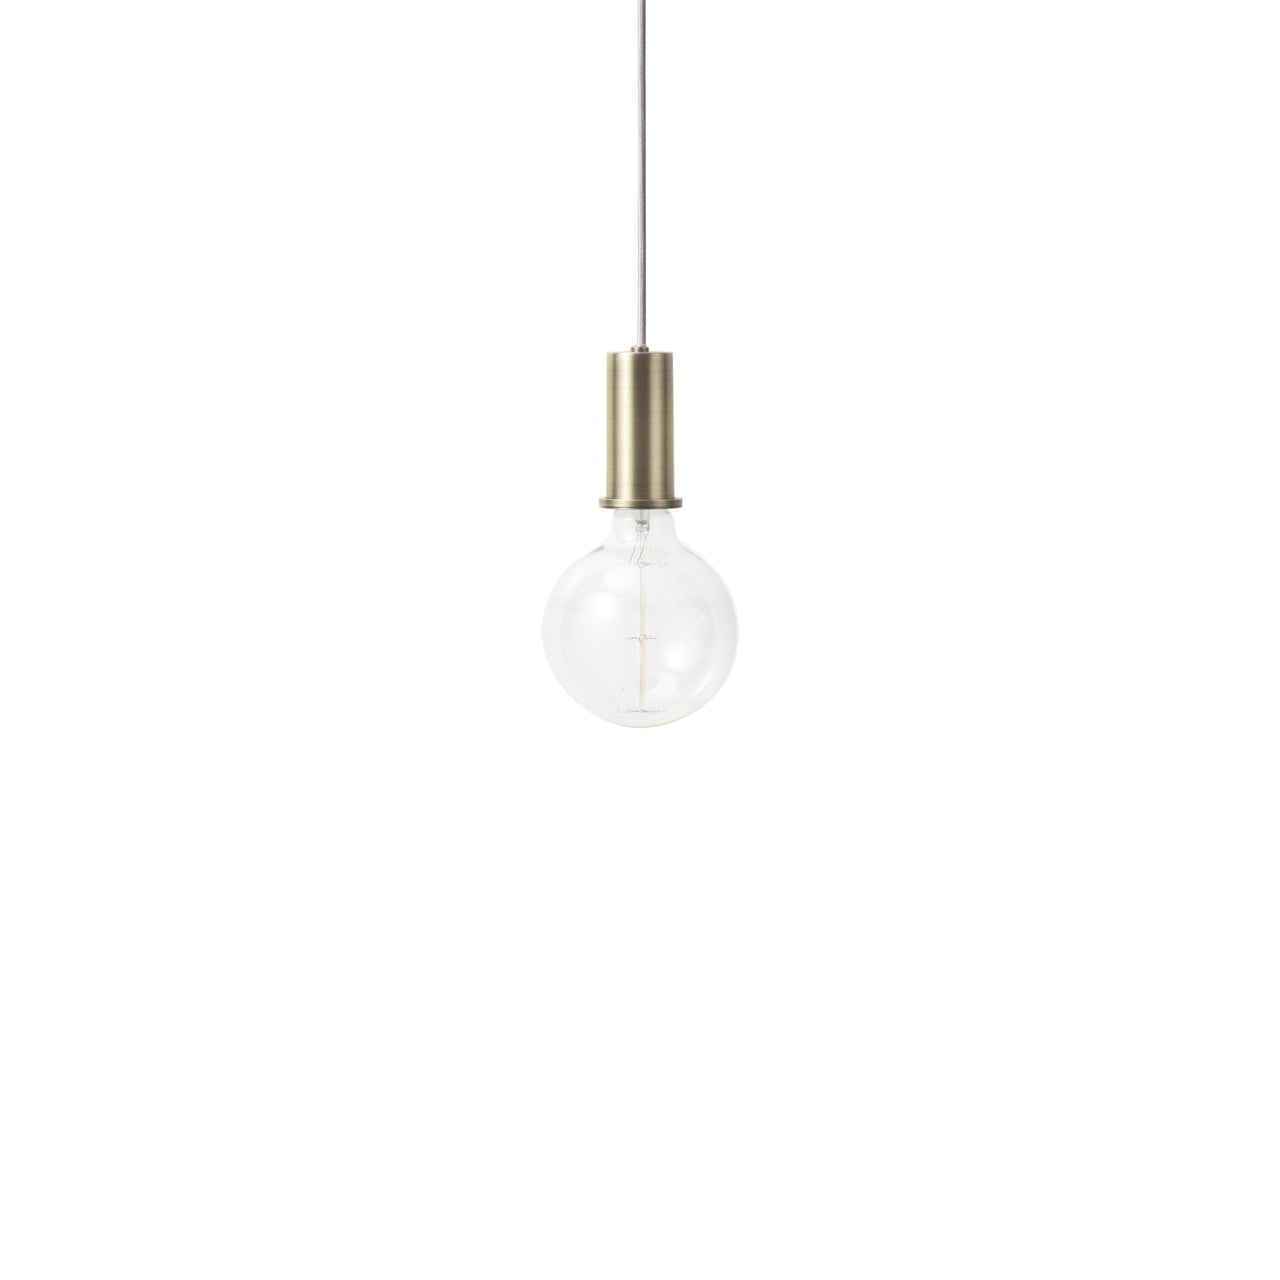 Collect Lighting: Pendant + Low + Brass